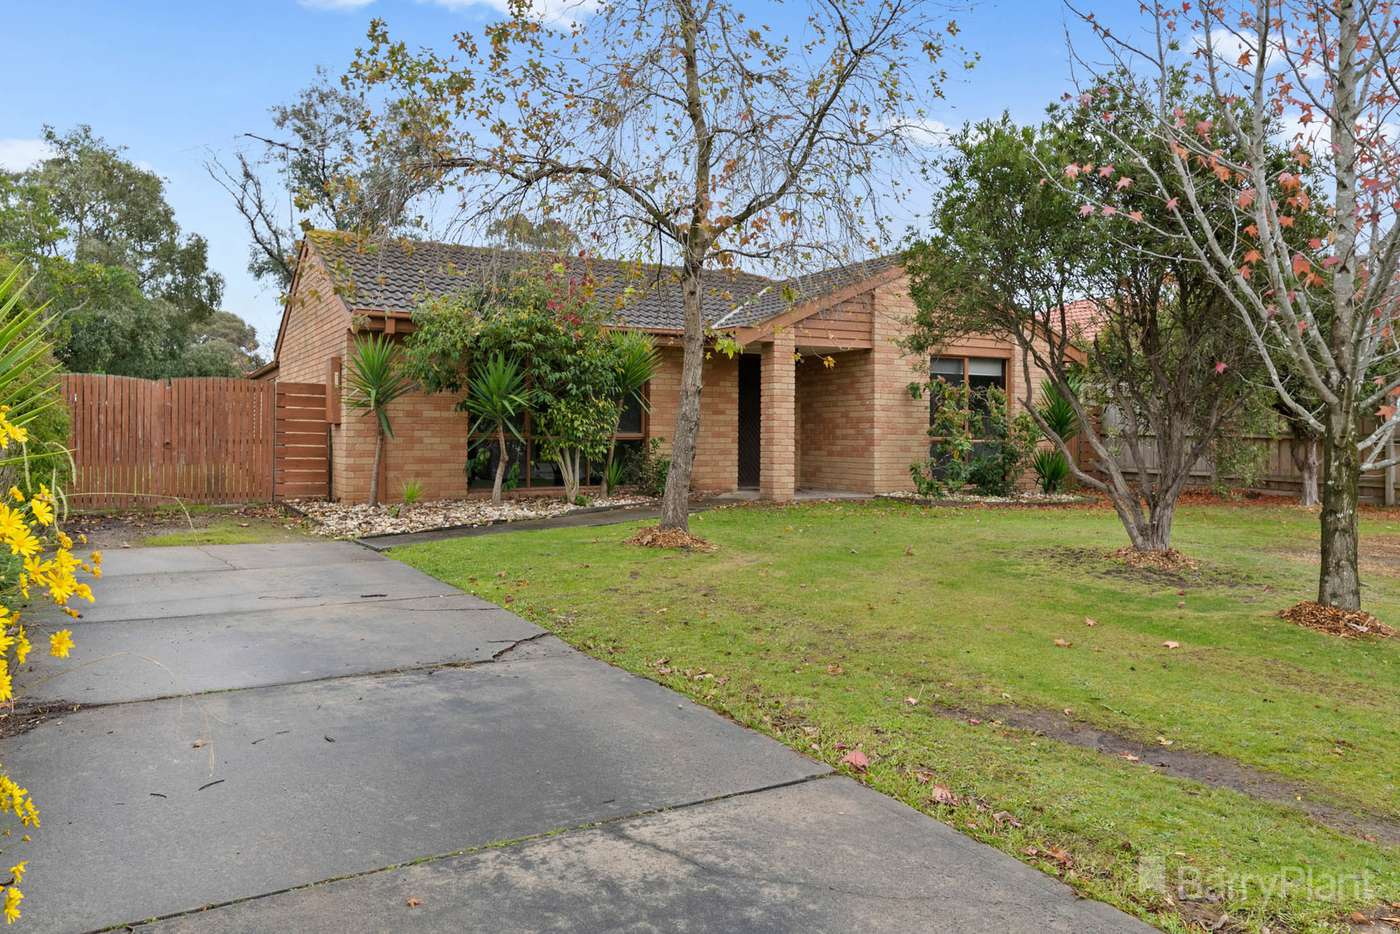 Main view of Homely house listing, 5 Tania Court, Pakenham VIC 3810